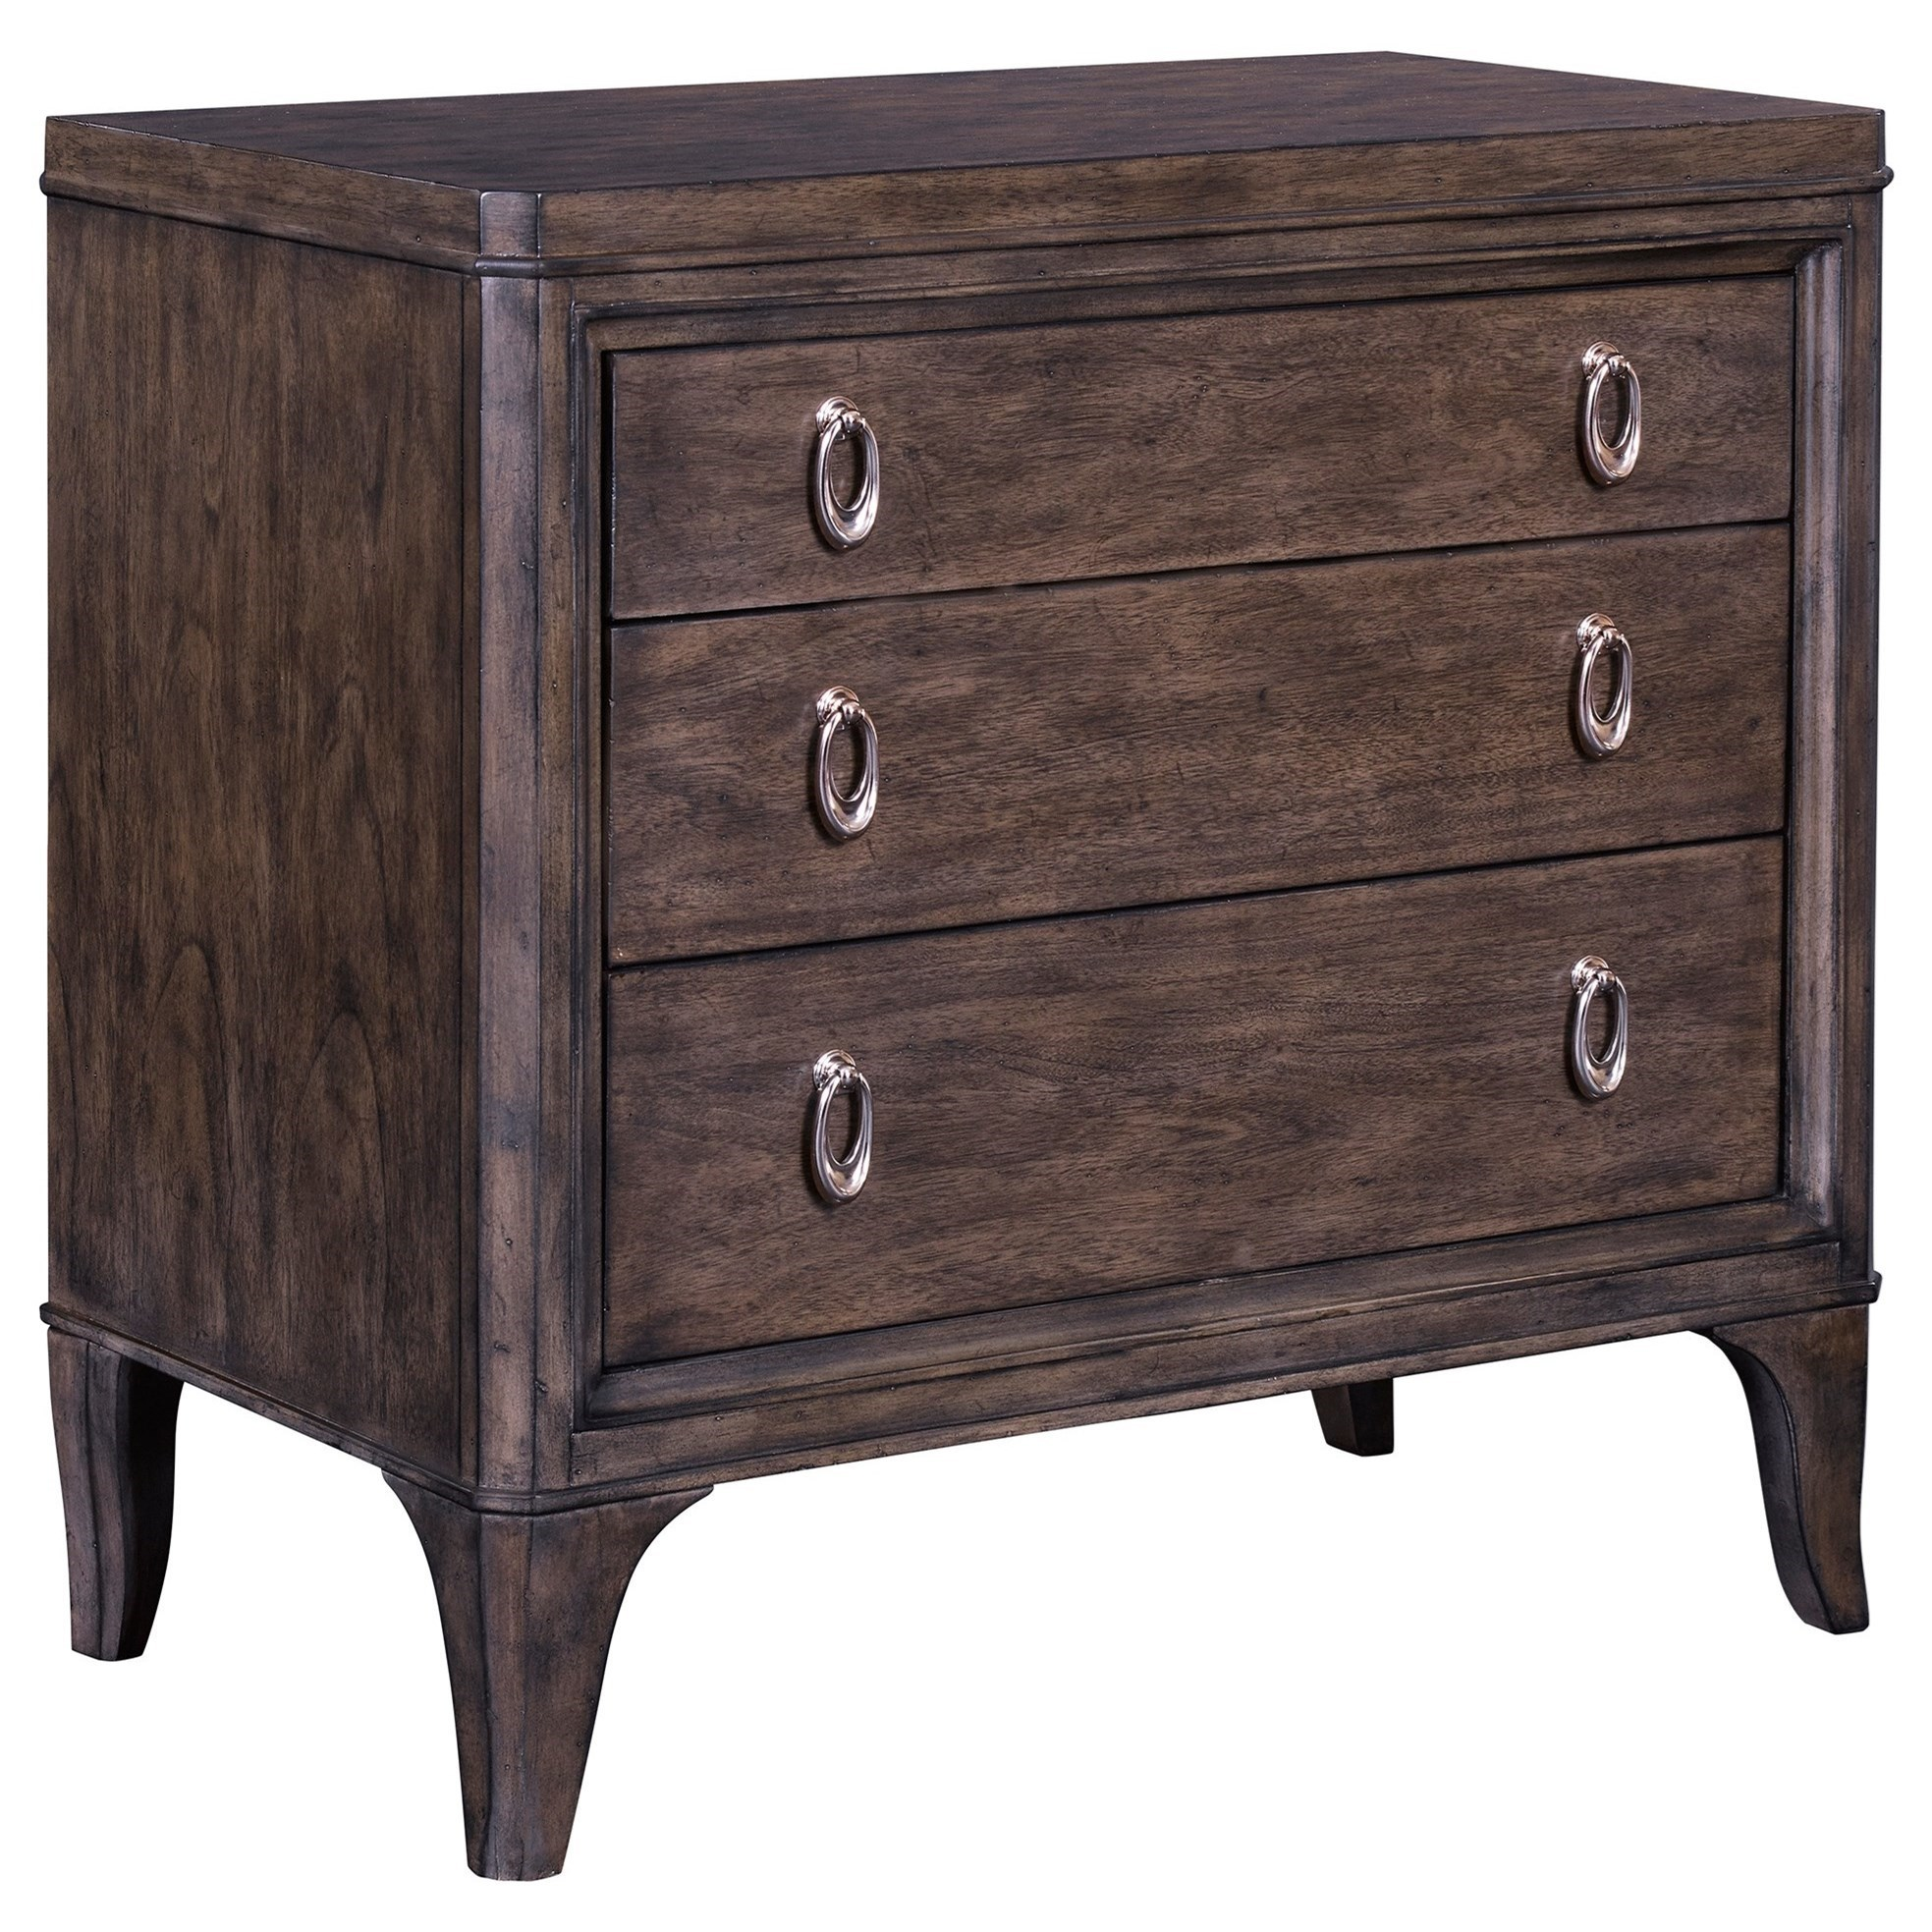 Broyhill Furniture Cashmera 2 Drawer Nightstand With Ring Pull Hardware